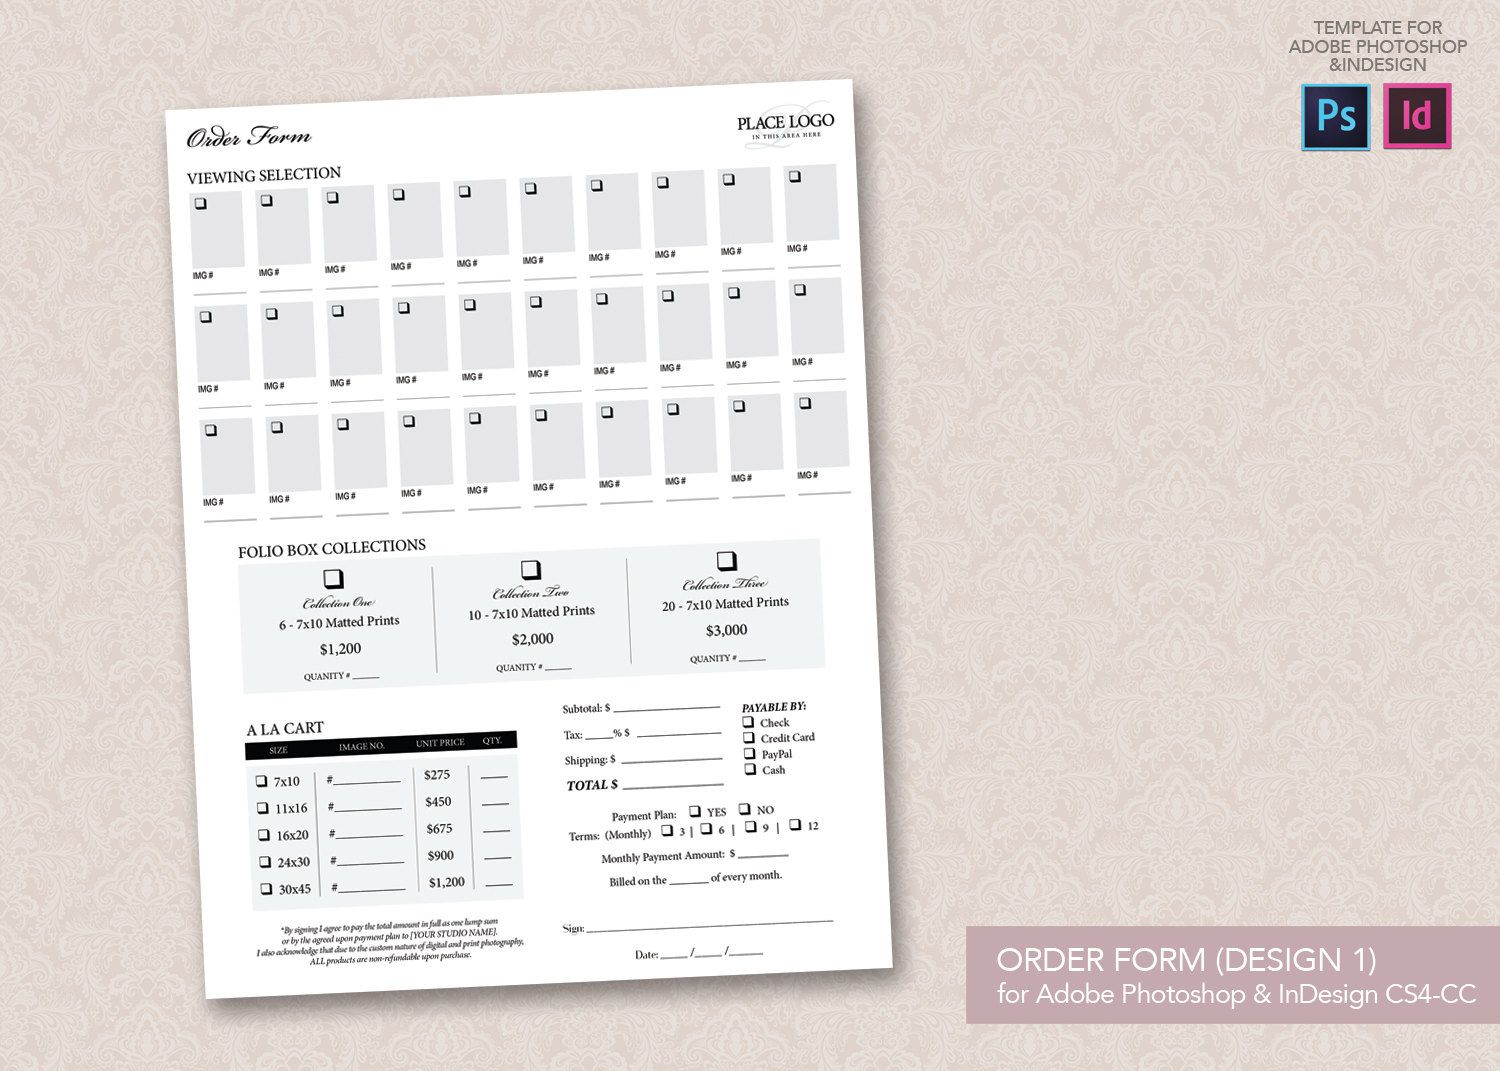 Portrait Order Forms Design 1 And 2 Templates For Adobe Idcs4 Cc